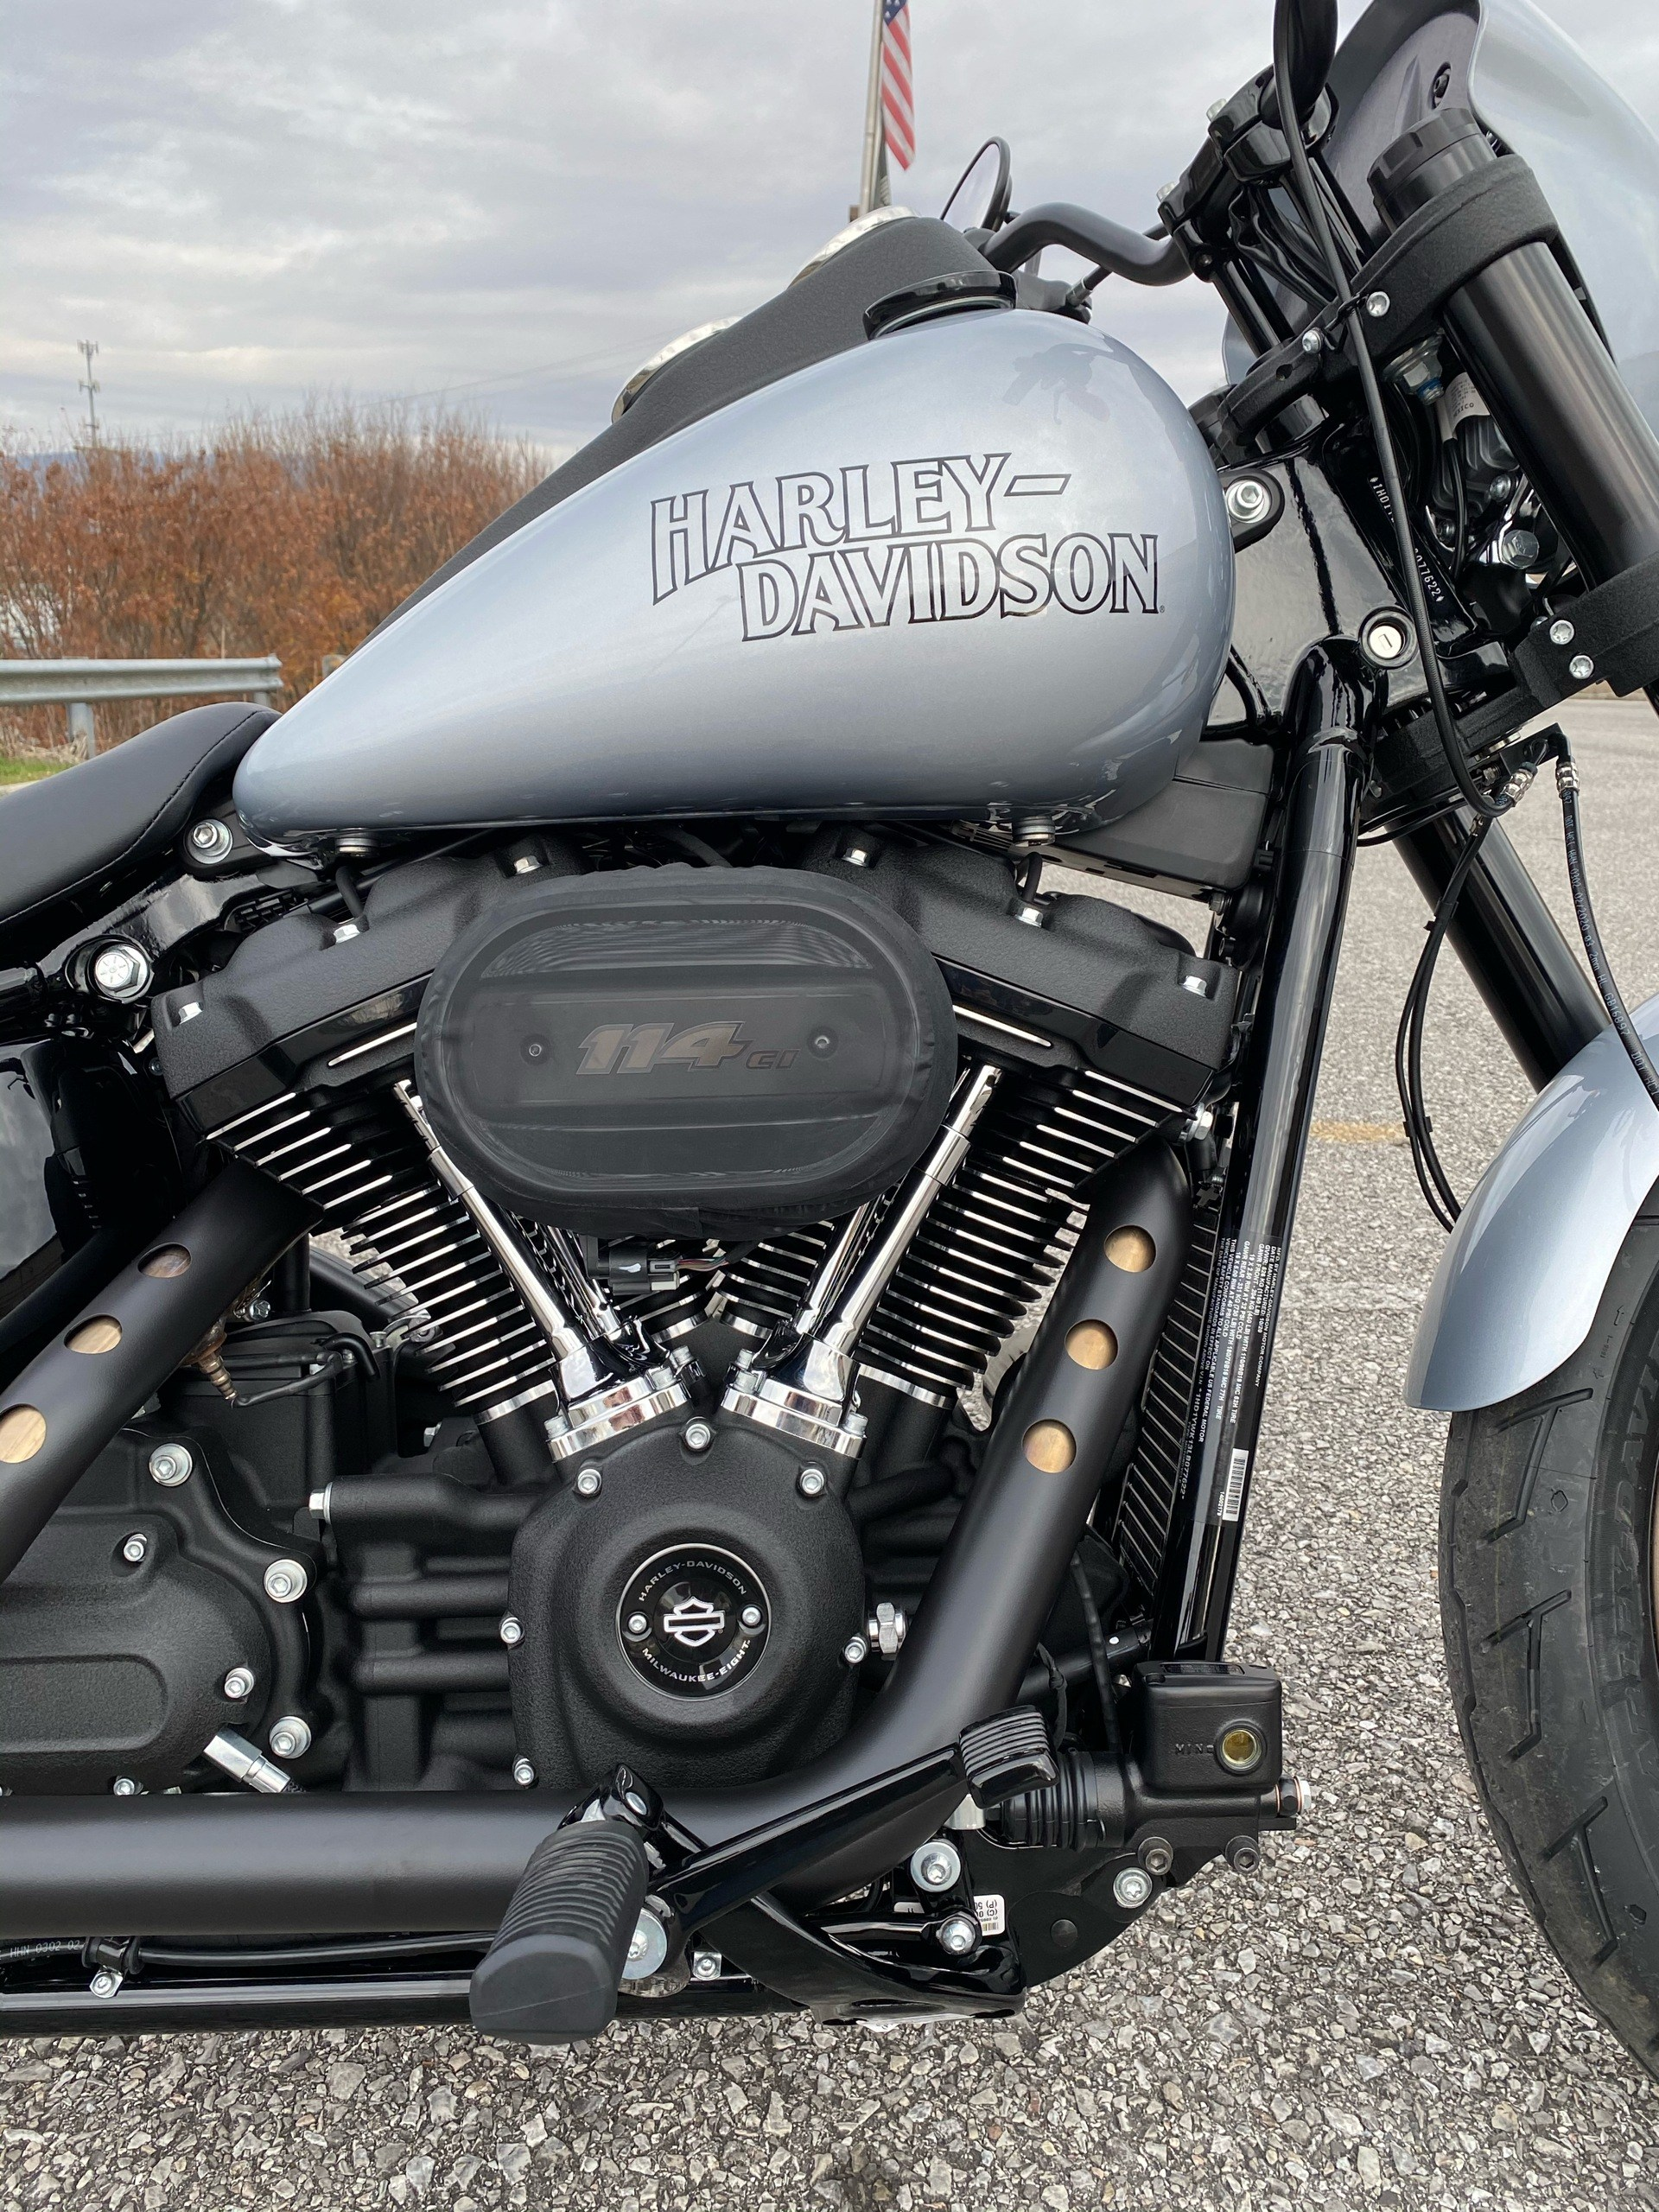 2020 Harley-Davidson Low Rider S in Roanoke, Virginia - Photo 8